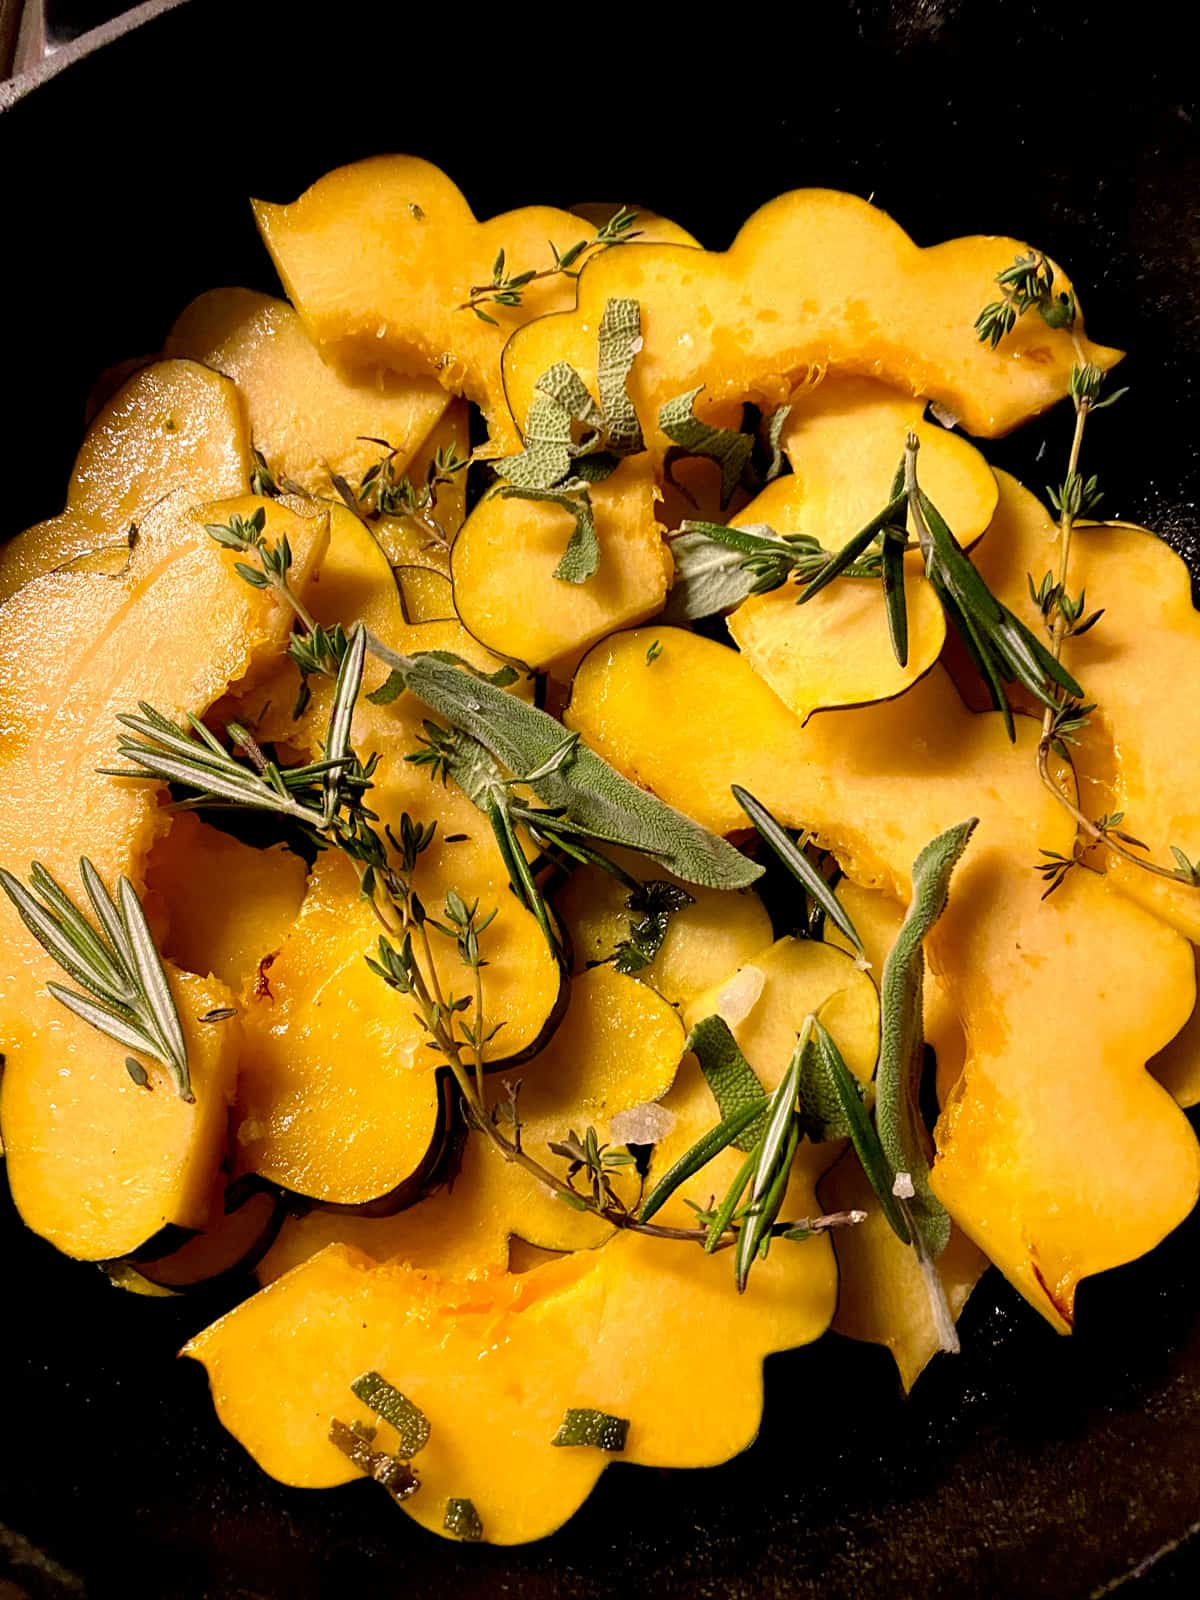 Acorn squash slices with herbs in a skillet.